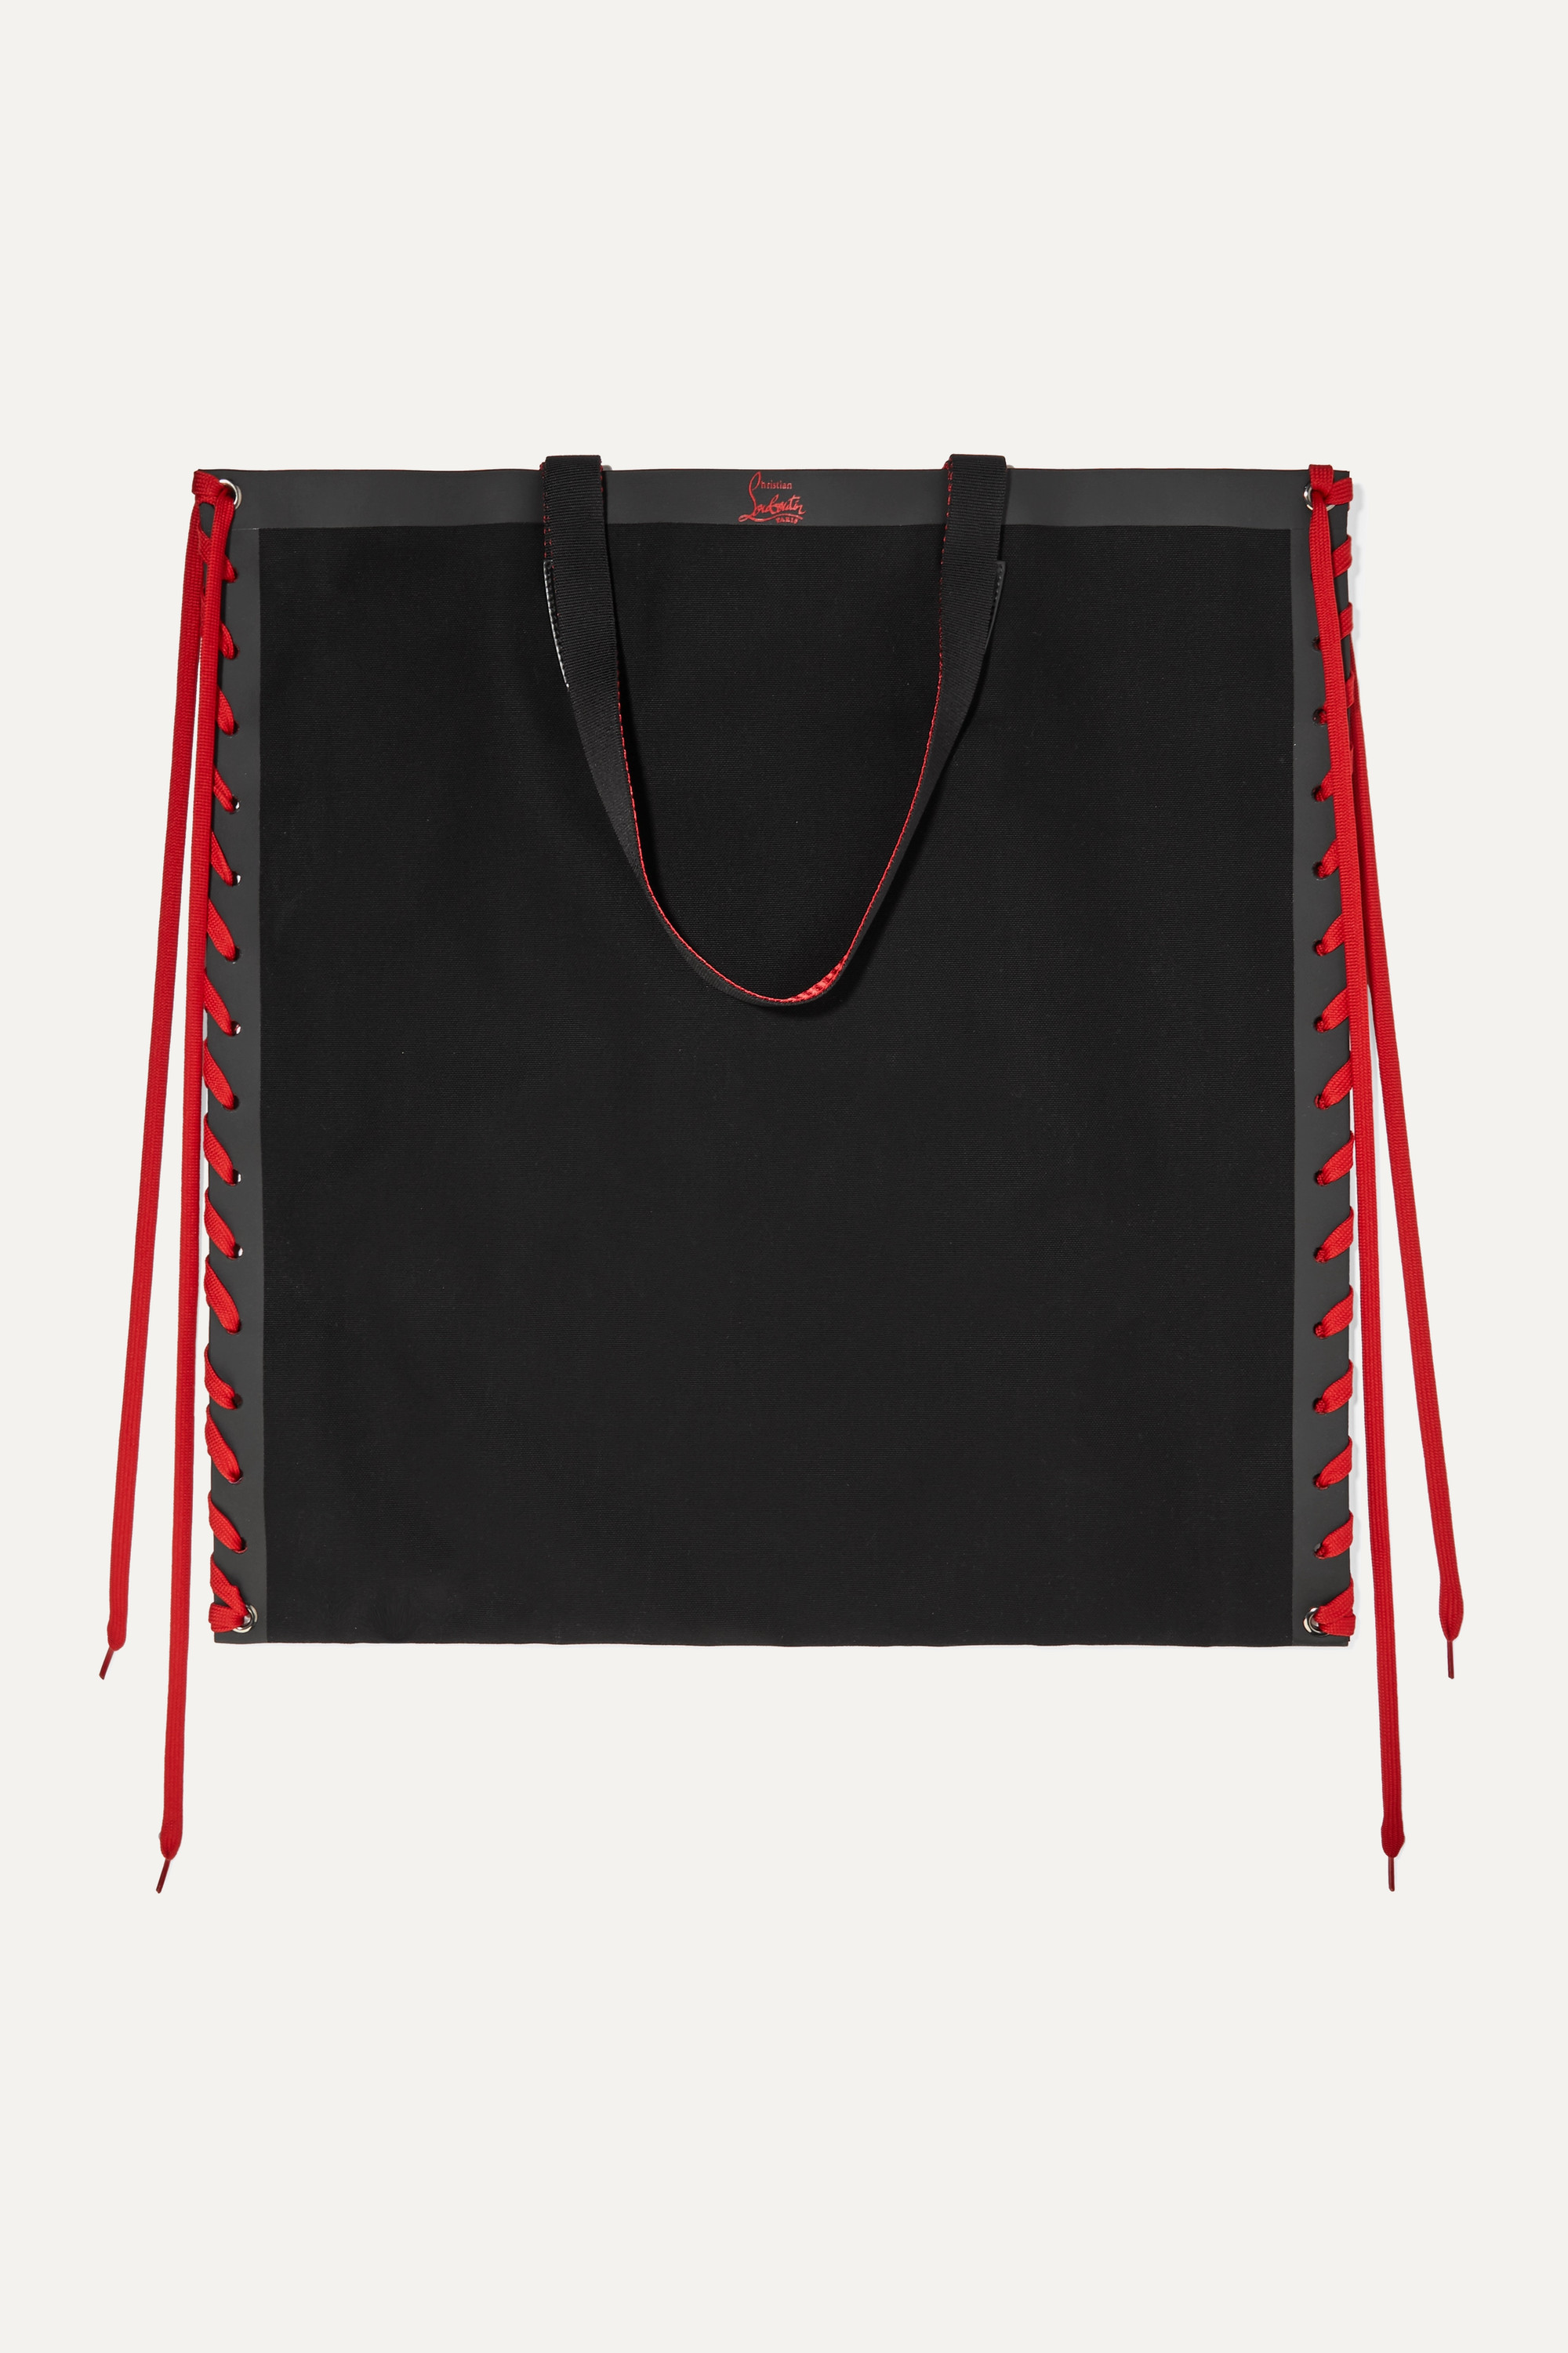 Christian Louboutin Cabalace lace-up leather-trimmed canvas tote